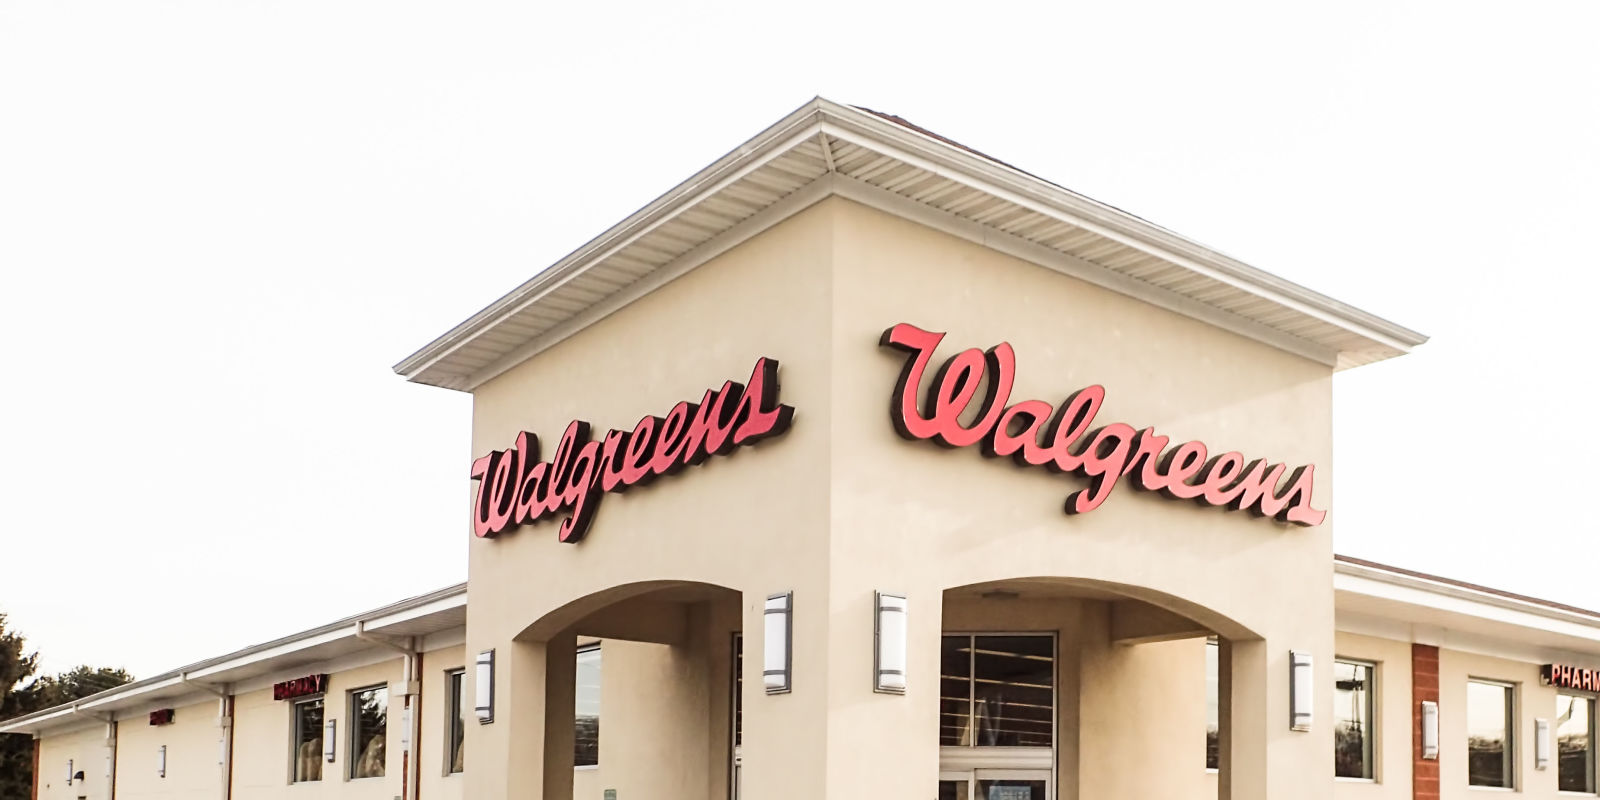 Walgreens Announces Closing Of 200 Stores In The US